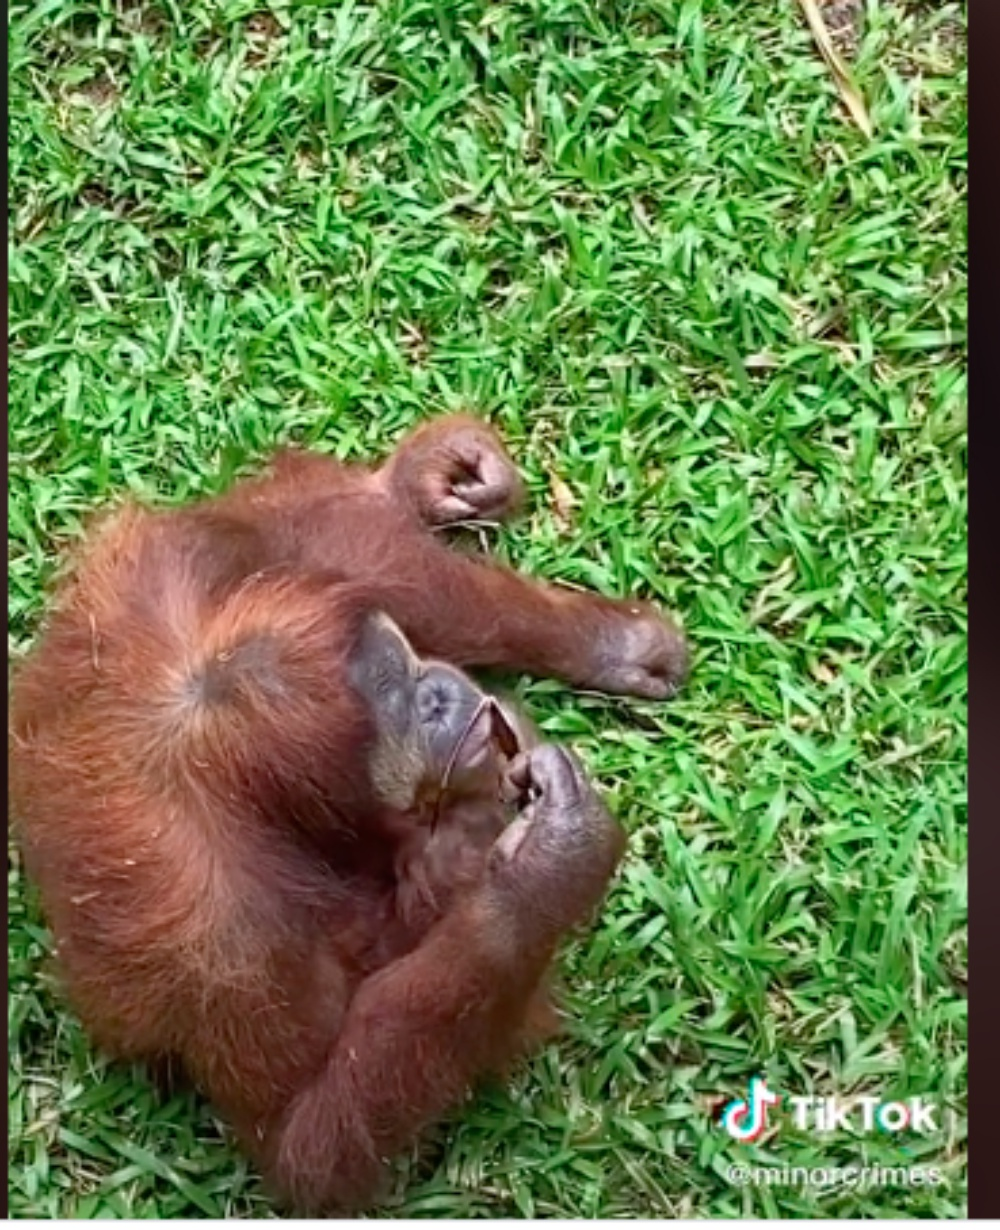 Orangutan At Indonesia Zoo Is Going Viral For Wearing Sunglasses Accidentally Dropped In Enclosure